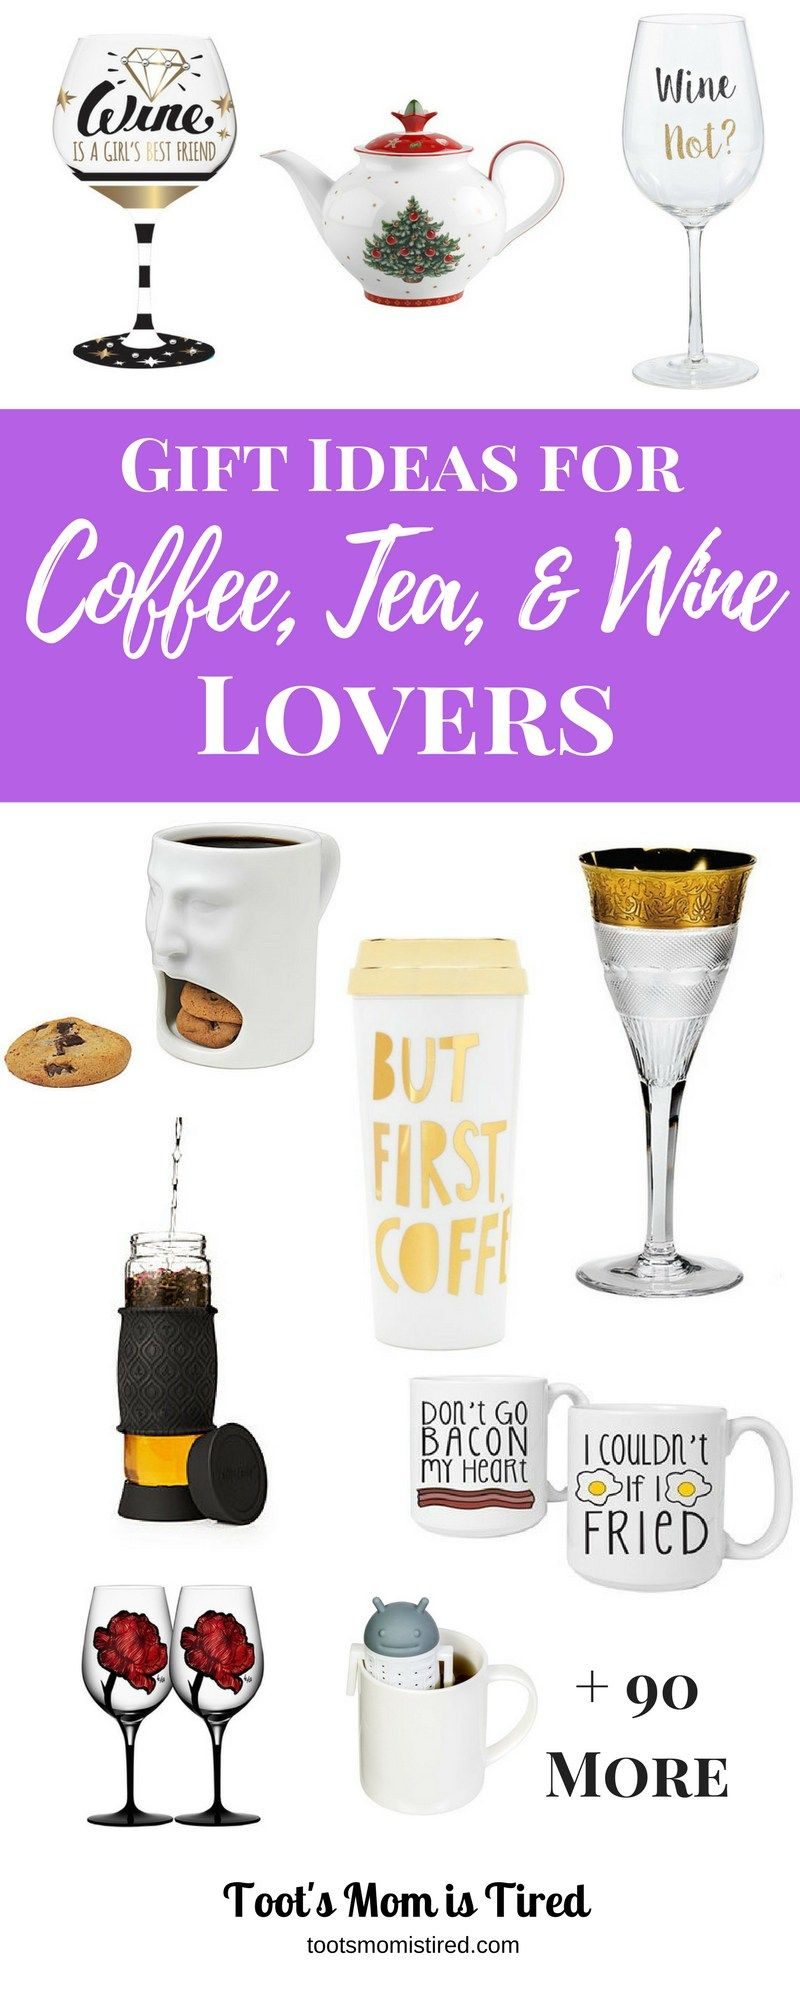 Gift Ideas for Coffee, Tea, and Wine Lovers   Gifts for wine lovers, Gifts, Gifts for mom